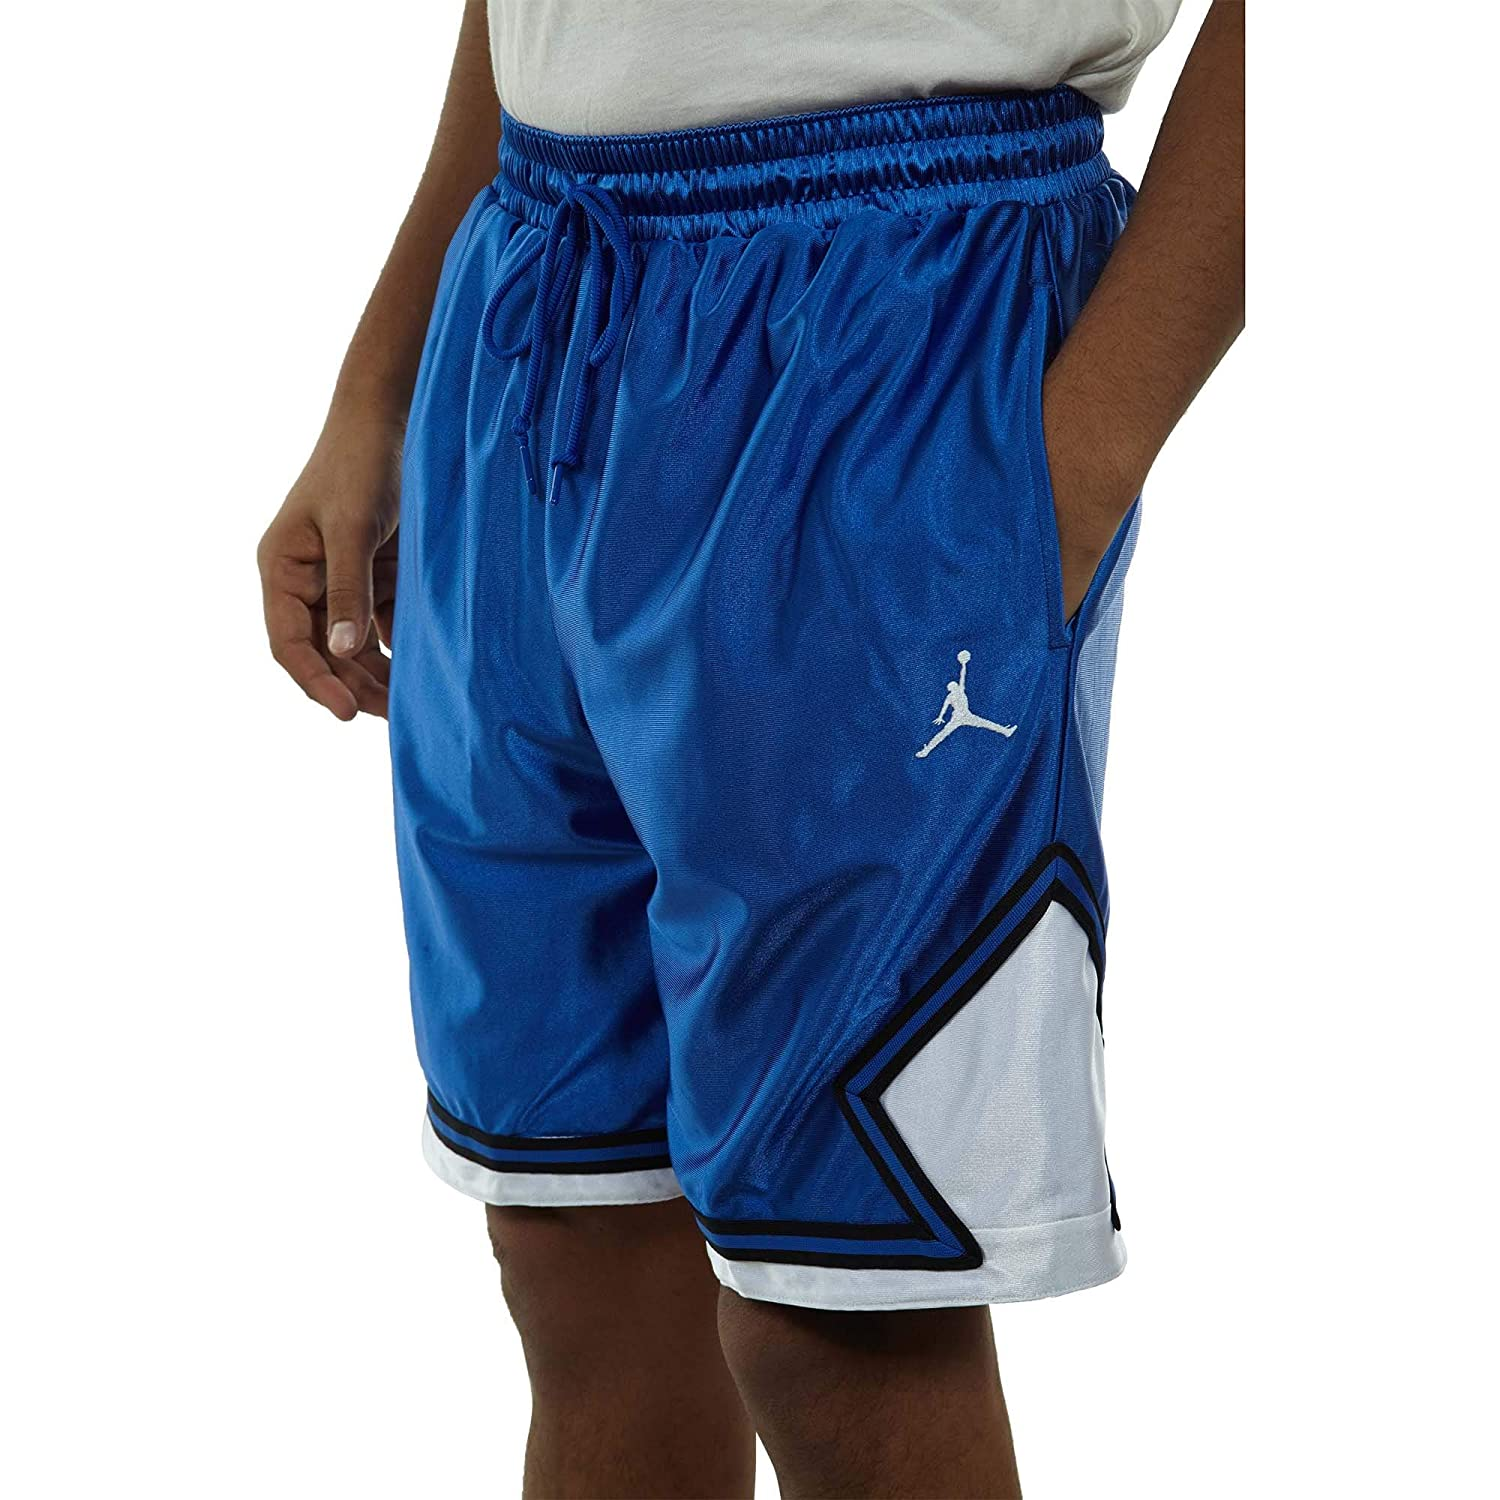 Amazon.com: Nike Air Jordan AJ Retro 10 Mesh Shorts Size 3XL ...